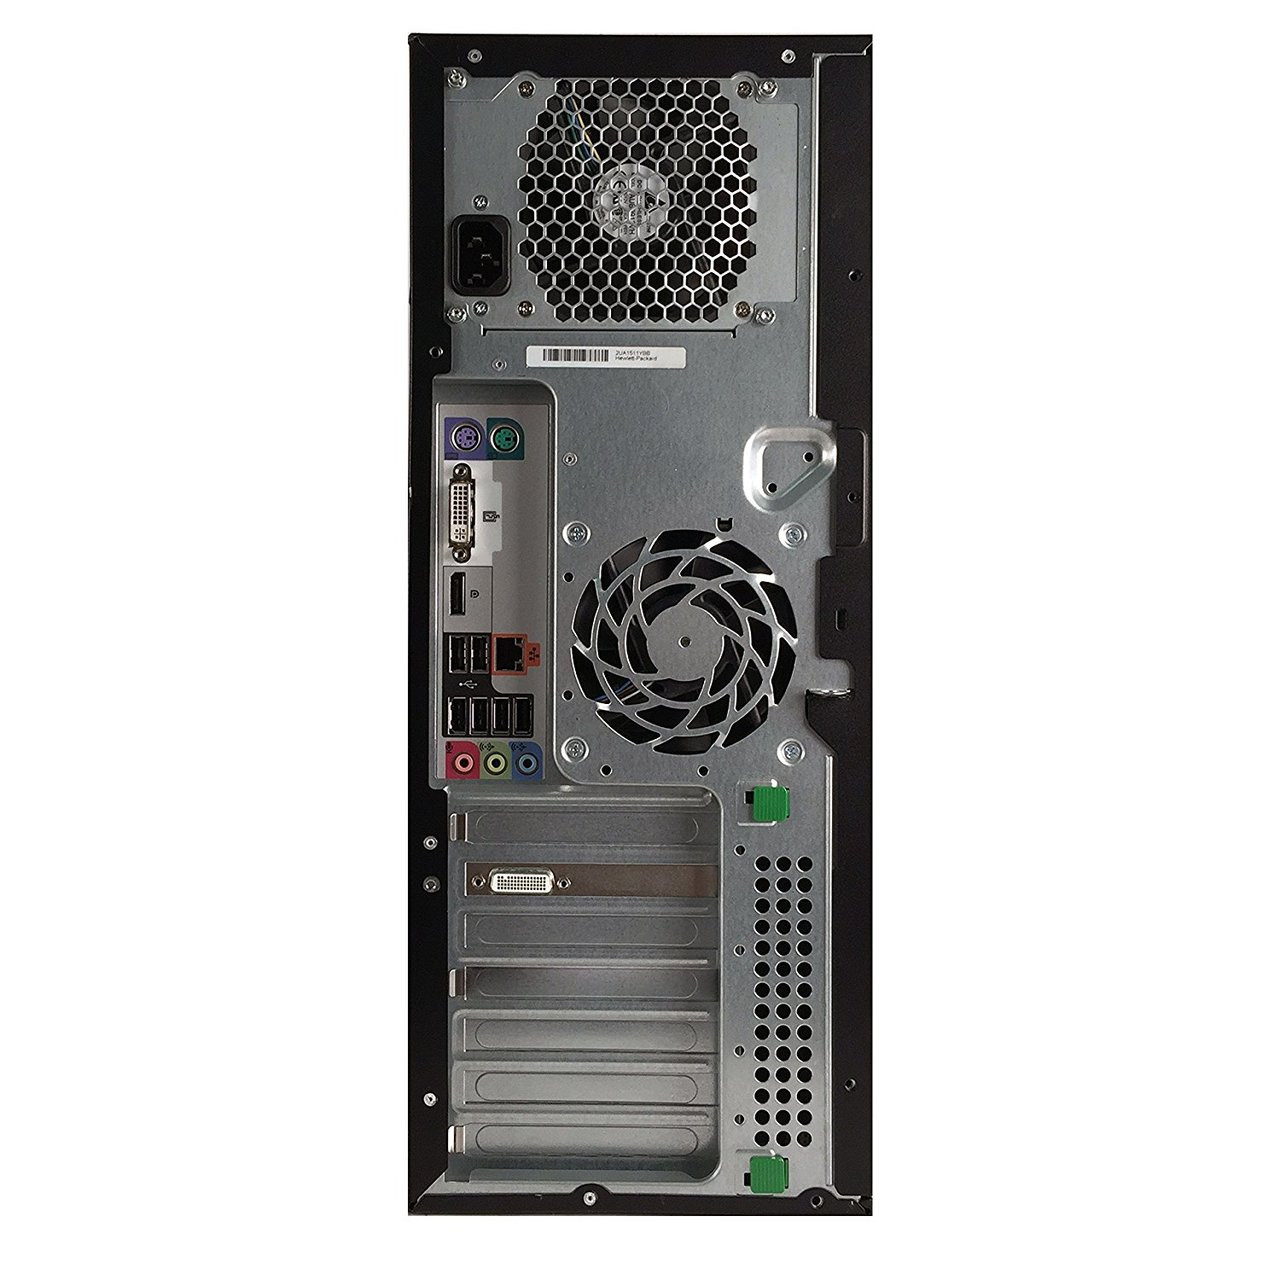 HP Z210 Workstation - Rear View